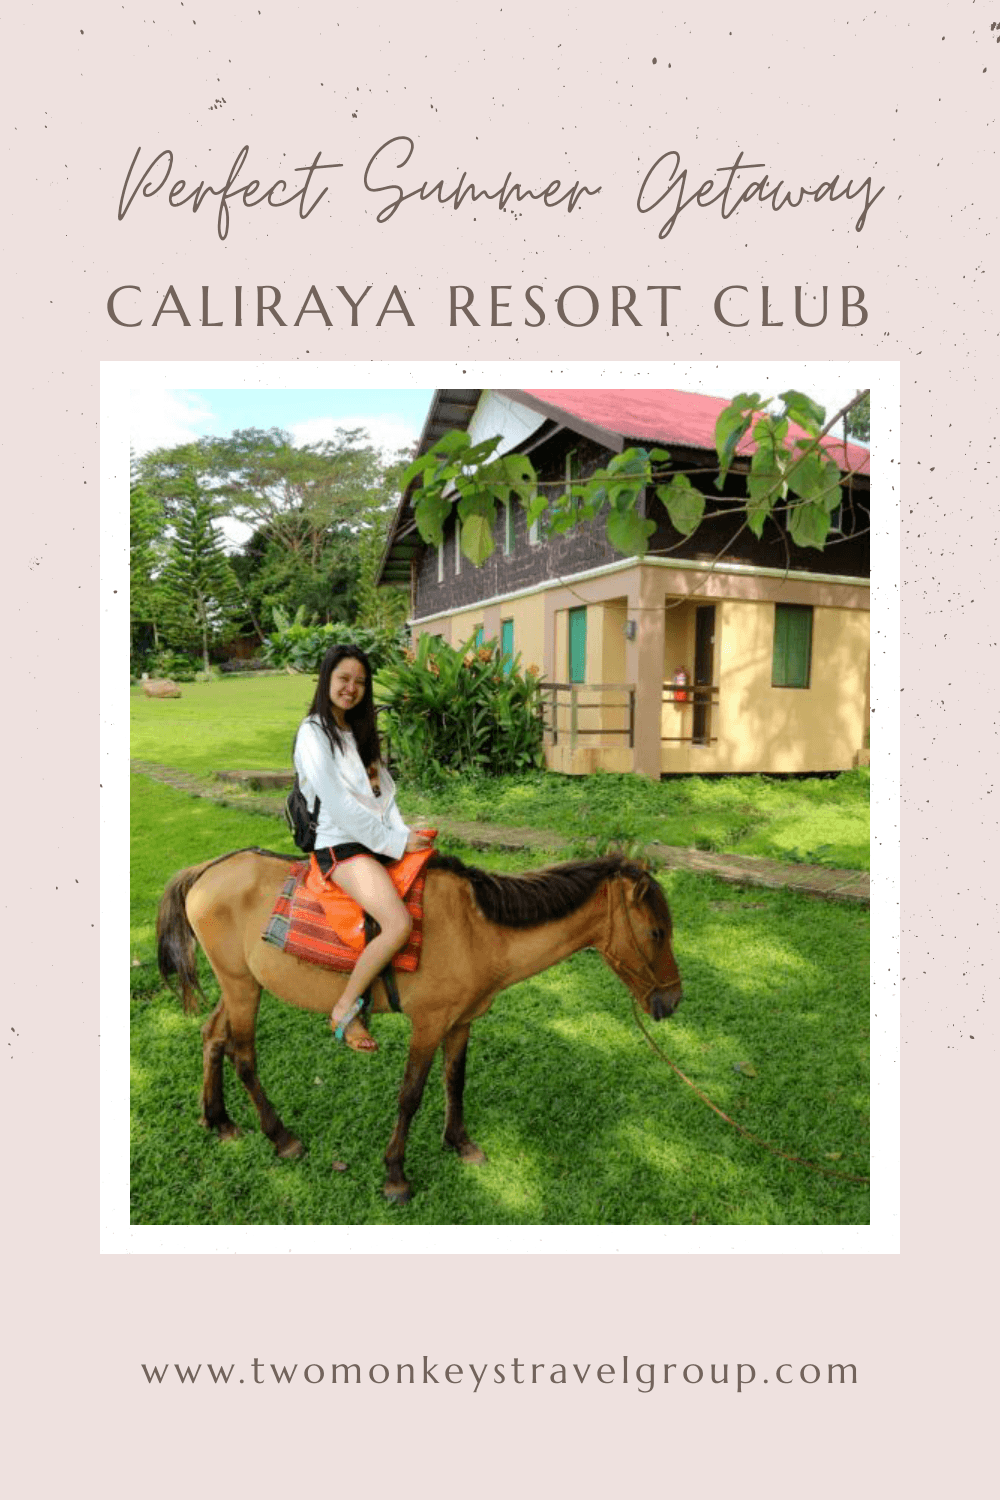 Caliraya Resort Club Your Perfect Summer Getaway in Laguna